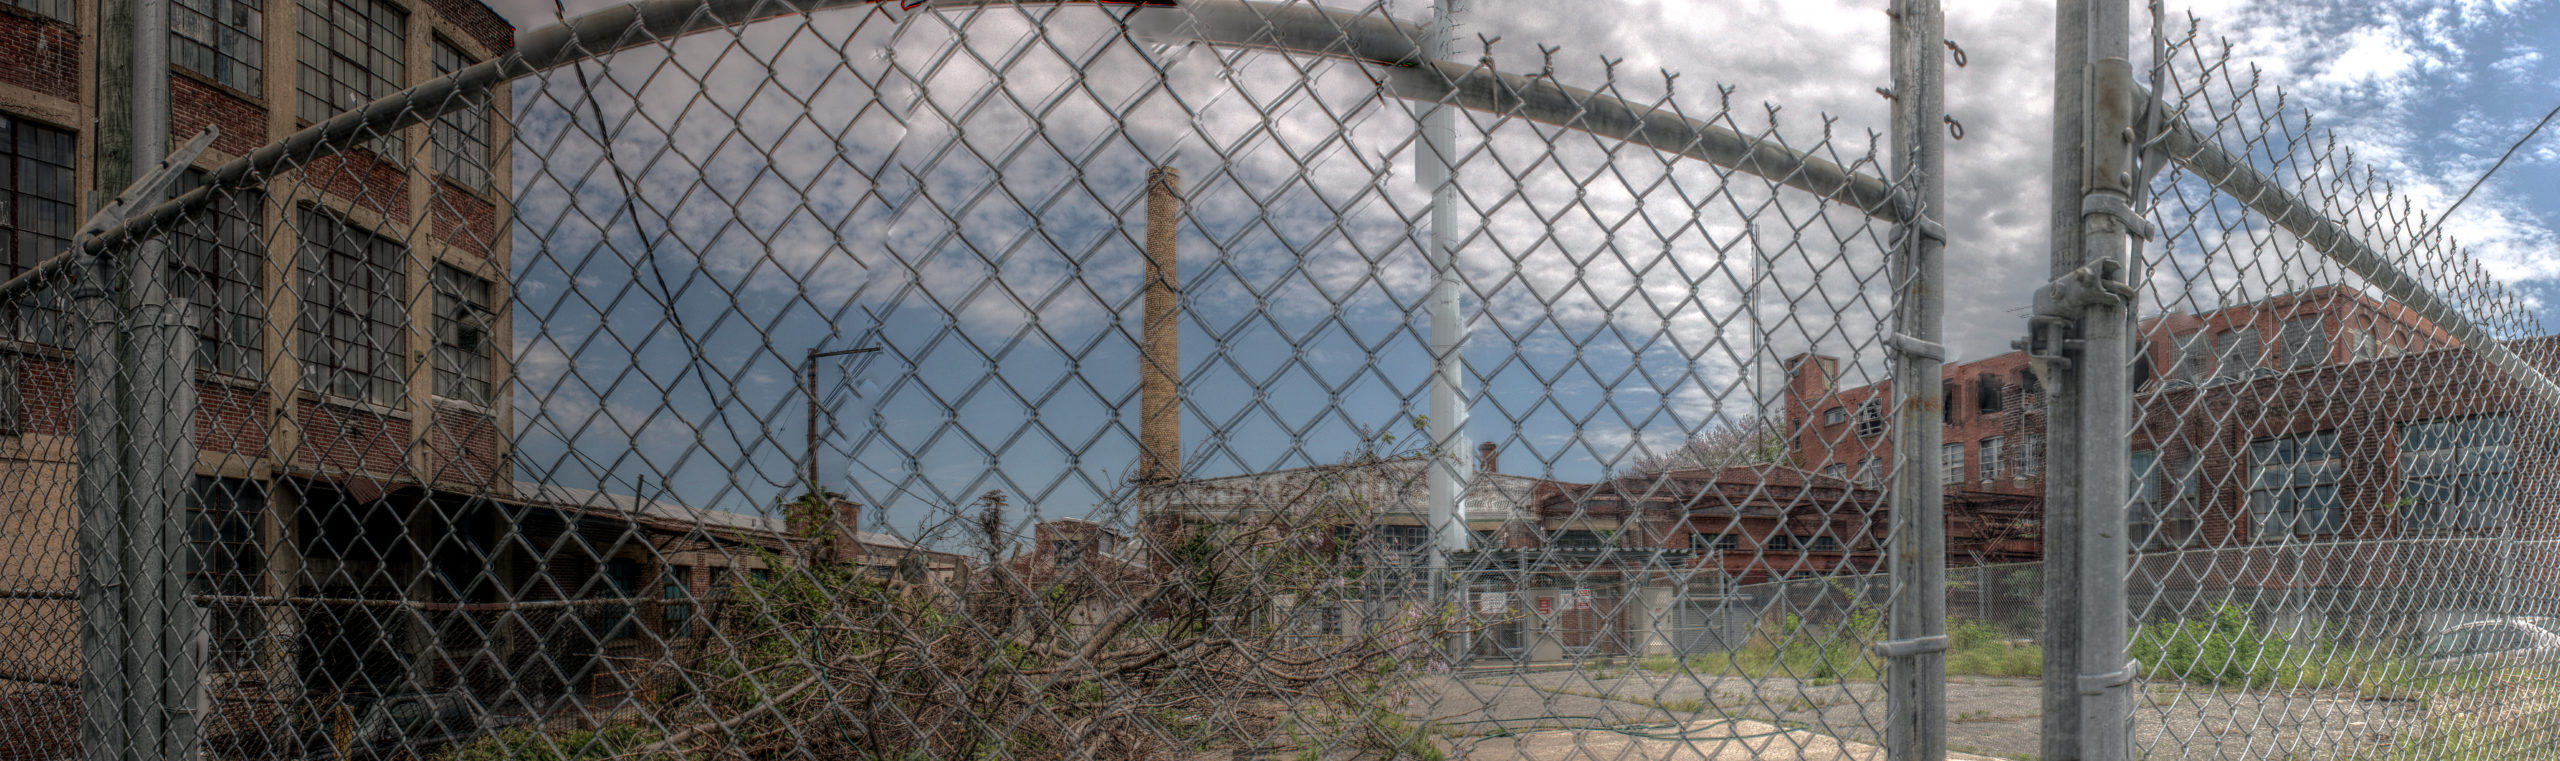 Factories 4710 Stenton Ave Philadelphia, PA Copyright 2019, Bob Bruhin. All rights reserved.